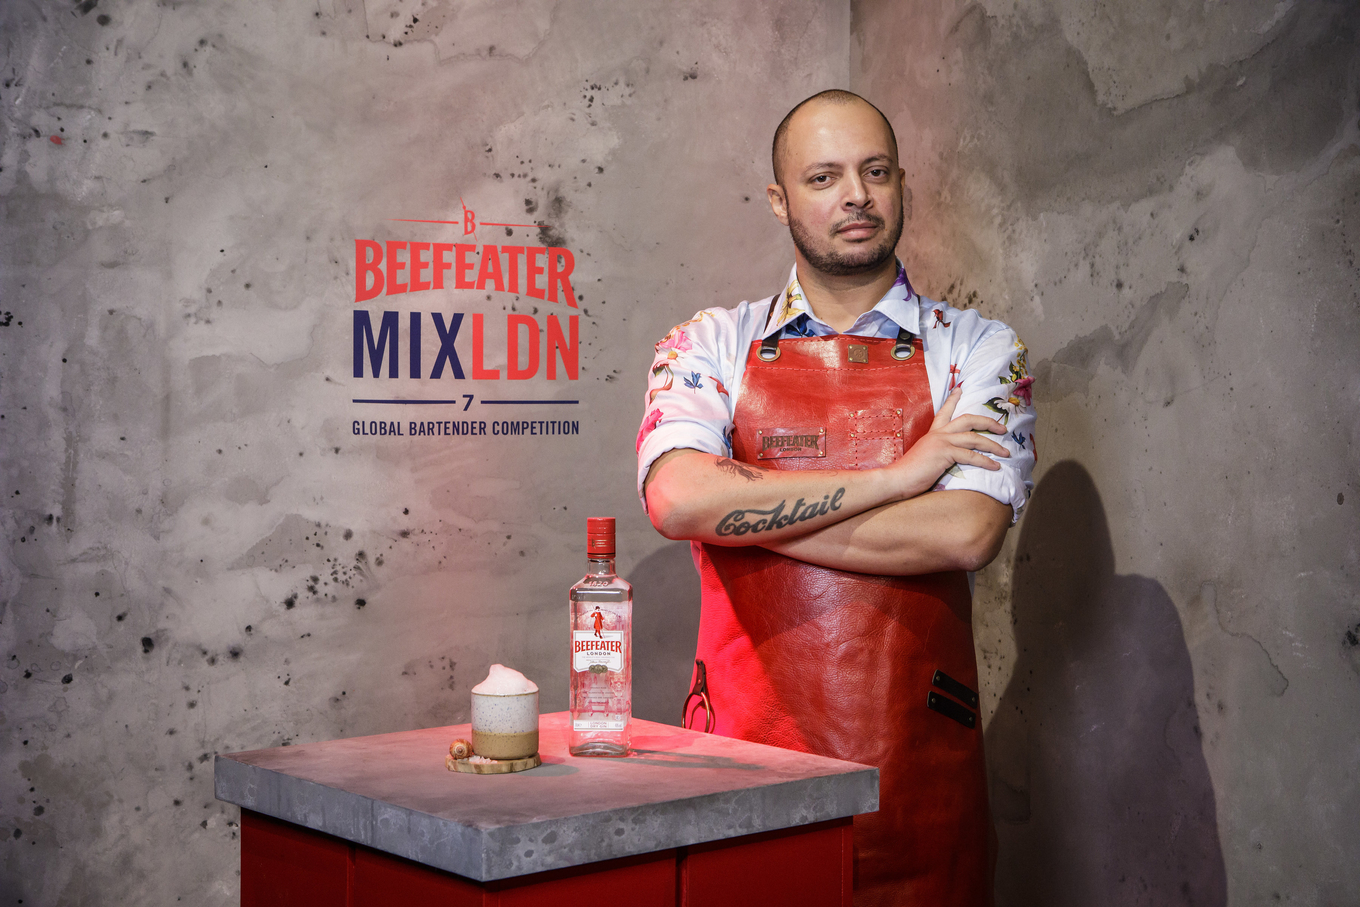 Beefeater MIXLDN - Luciano Guimarães image 1